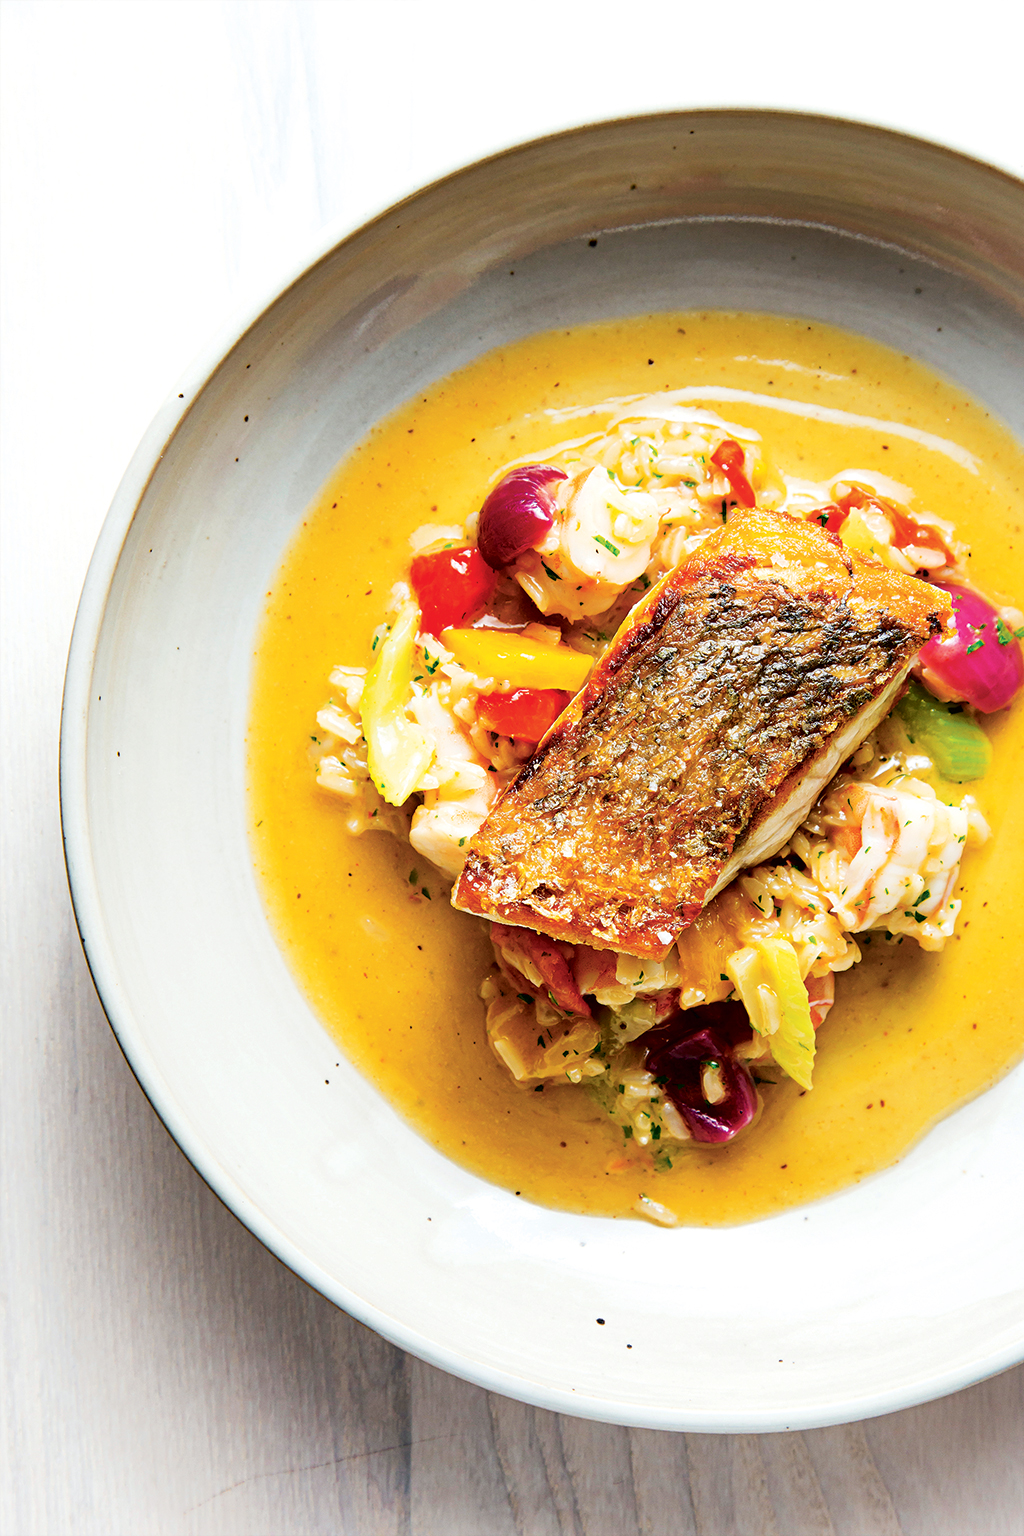 At Kinship, redfish sits atop shrimp jambalaya seasoned with Old Bay.